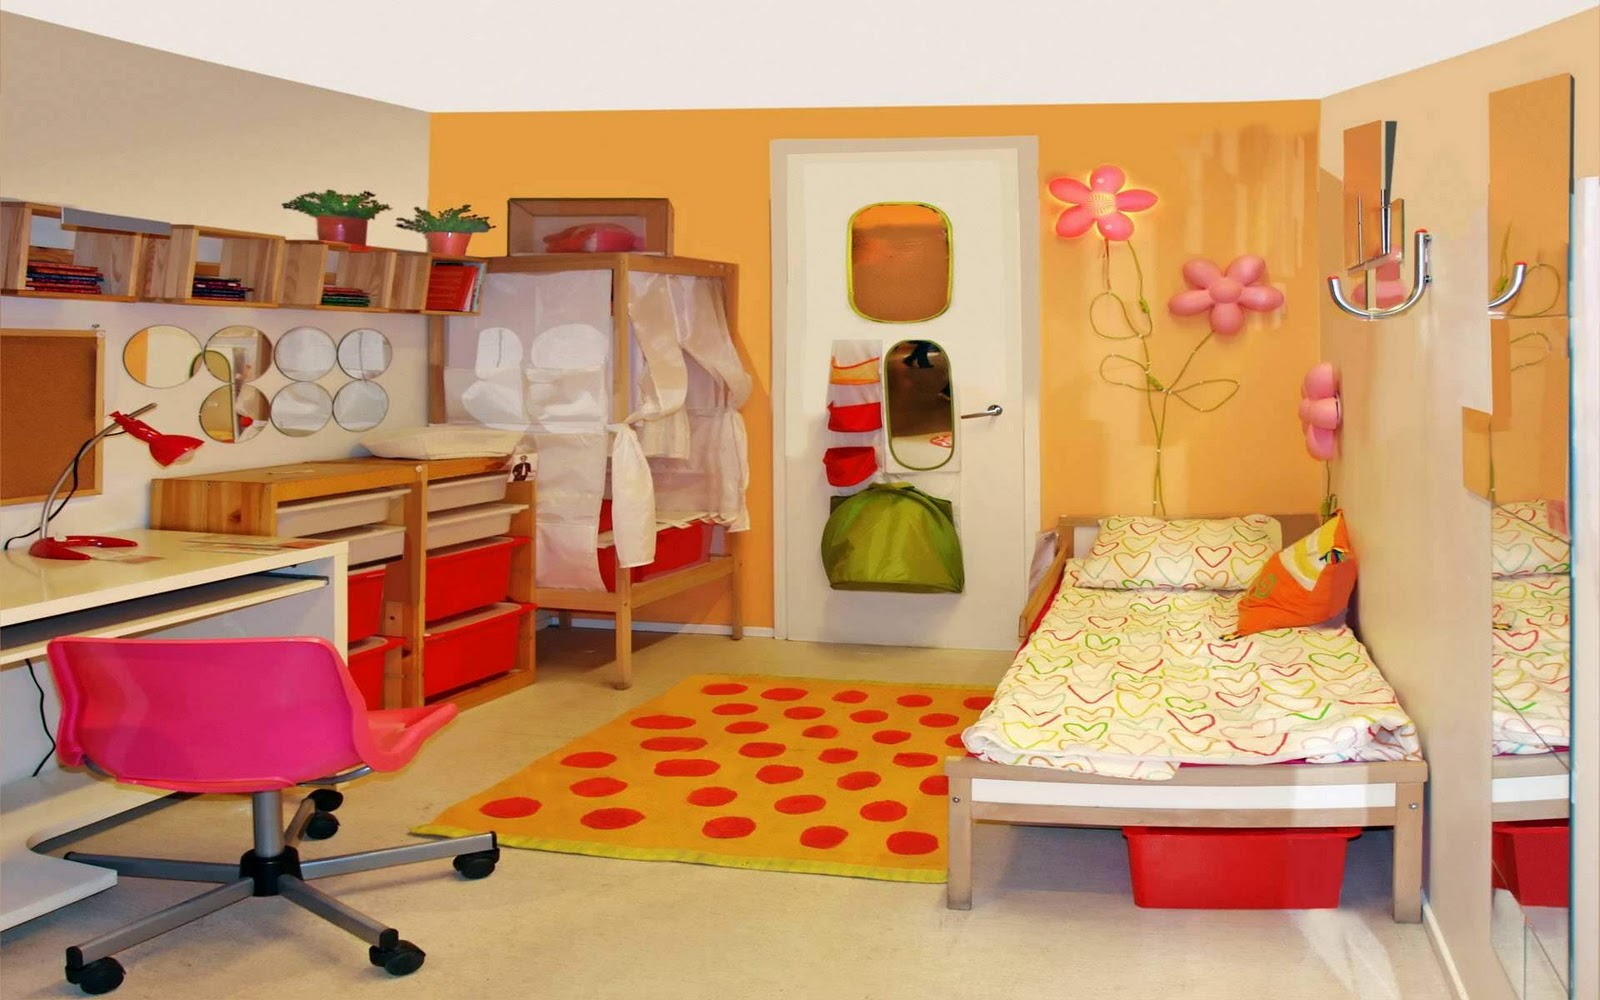 Wallpaper wallpaper ideas for kids room for Ideas for kids room